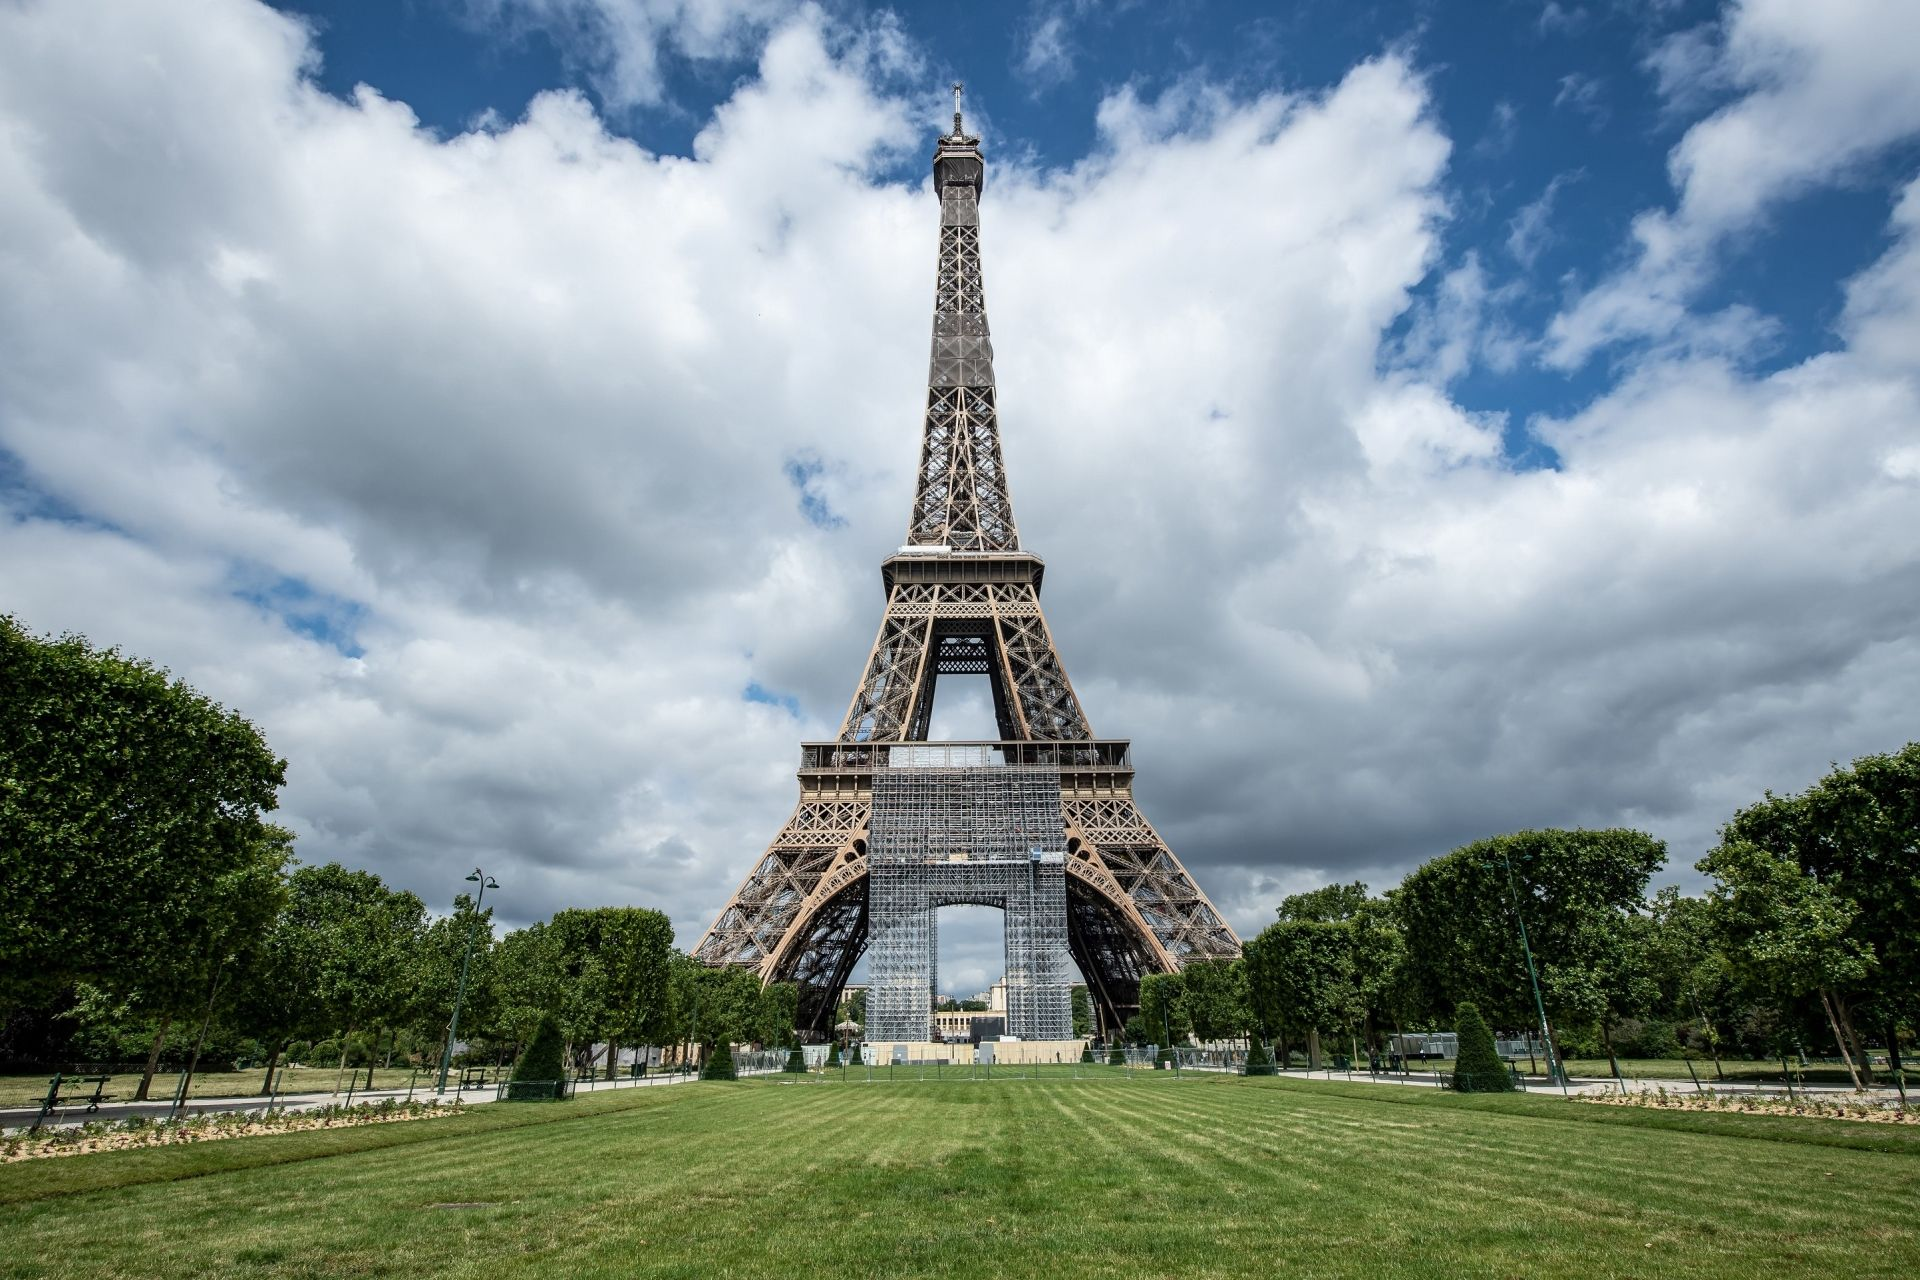 Picture of the Eiffel tower taken on June 15, 2020 in Paris, ahead of its partial reopening to the public as France eases lockdown measures taken to curb the spread of the Covid-19 pandemic (novel coronavirus). (Photo by BERTRAND GUAY / AFP)